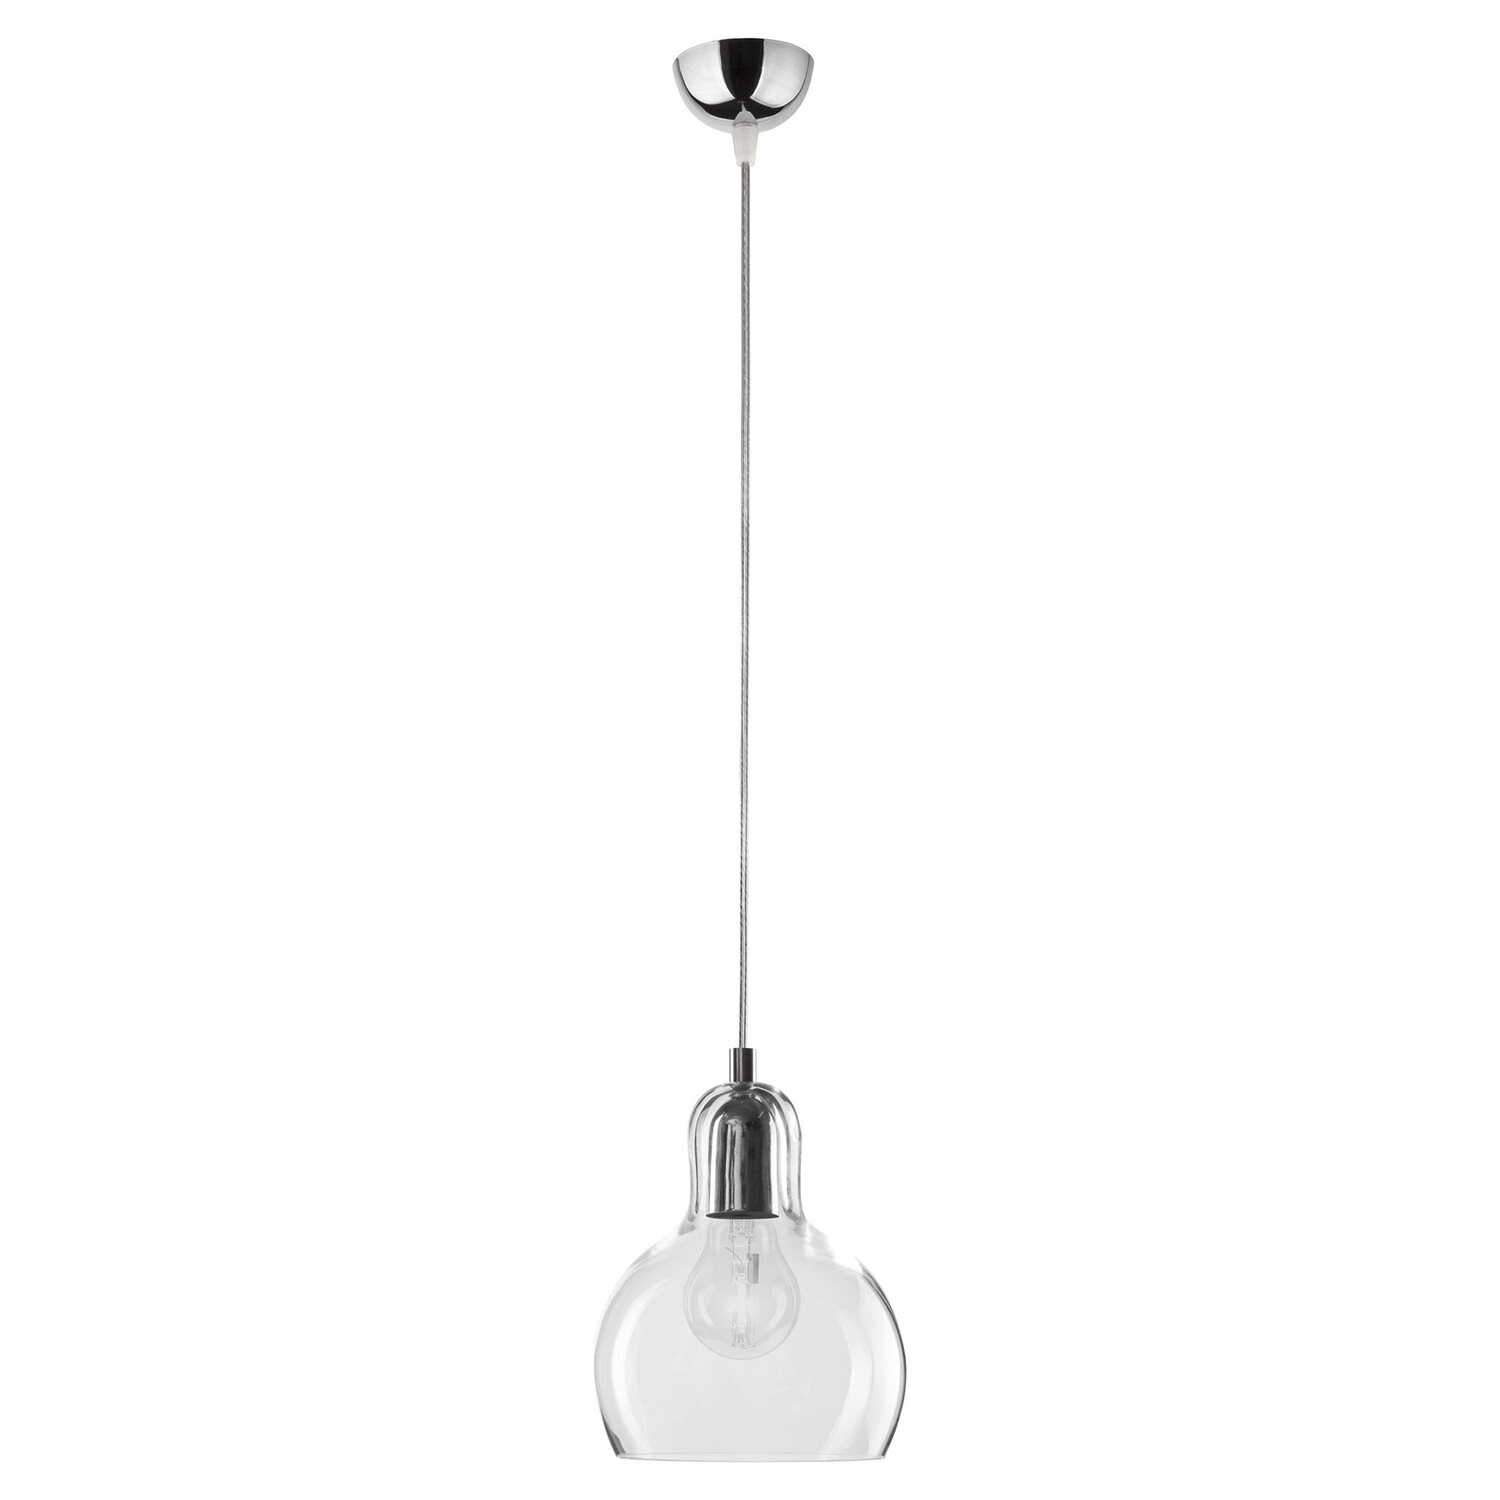 Tk Lighting Lampa Sufitowa Mango 1x60w E27